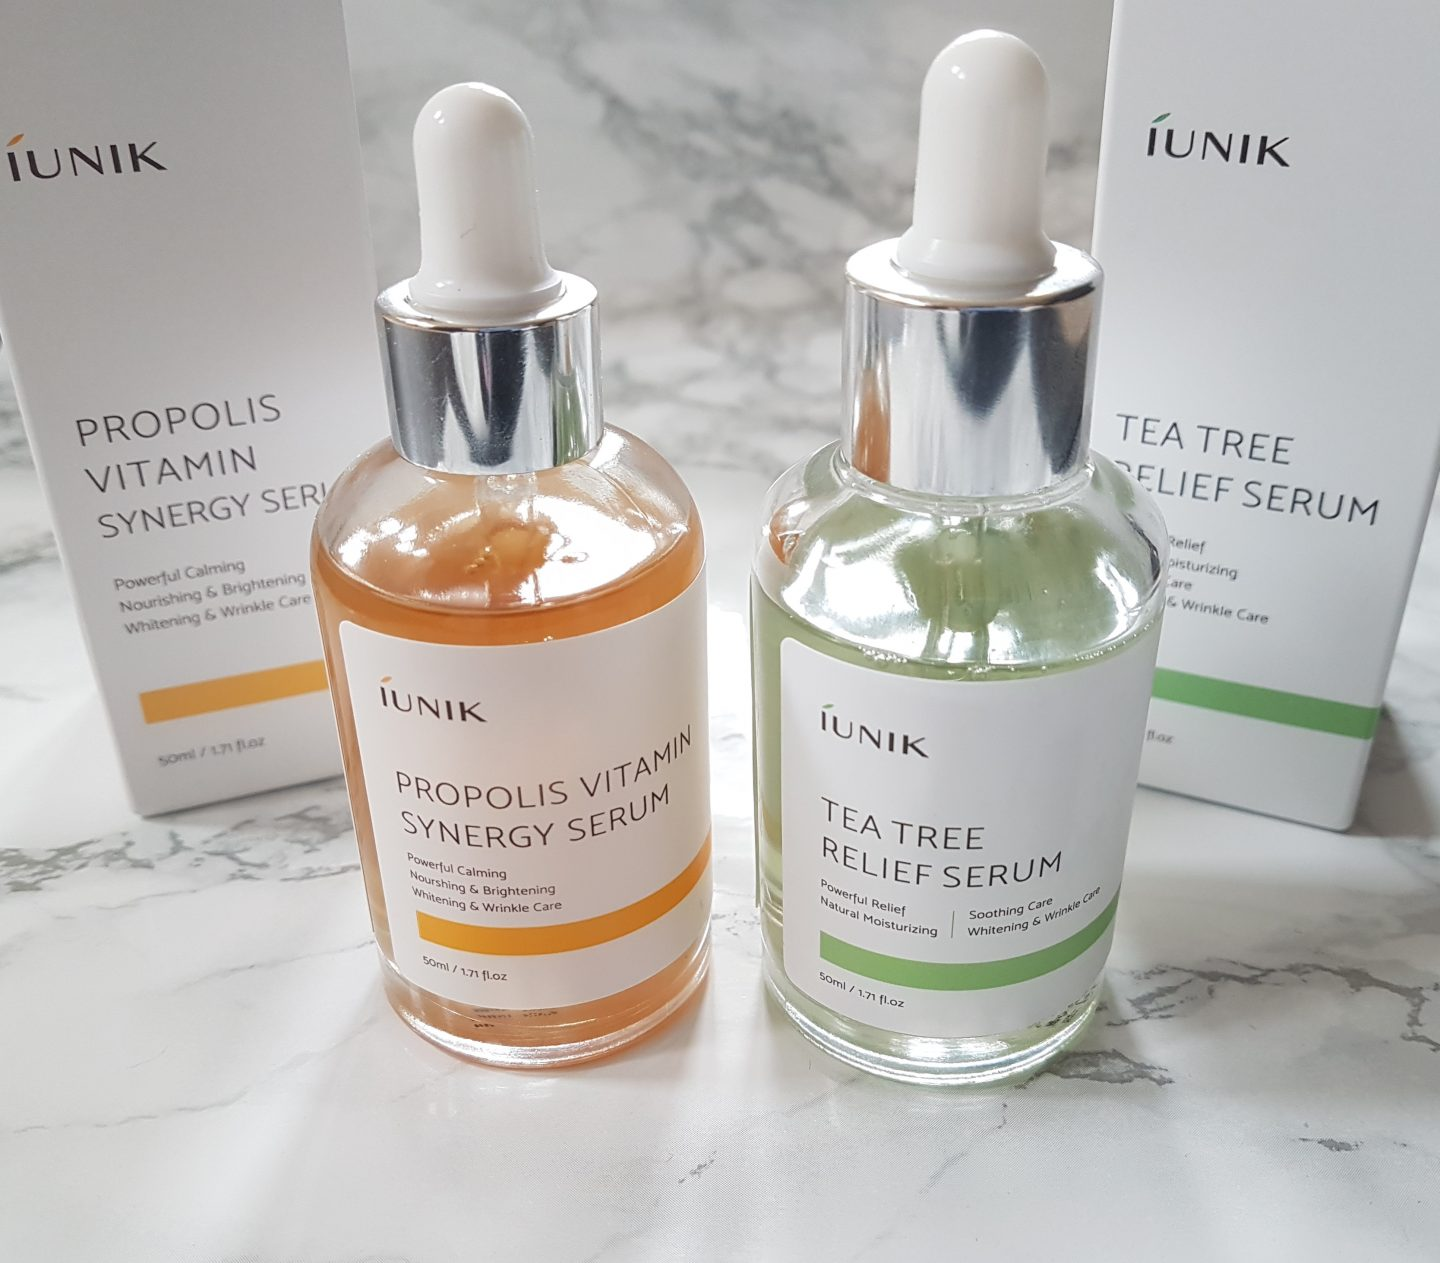 REVIEW: IUNIK Tea Tree Relief Serum & Propolis Vitamin Synergy Serum